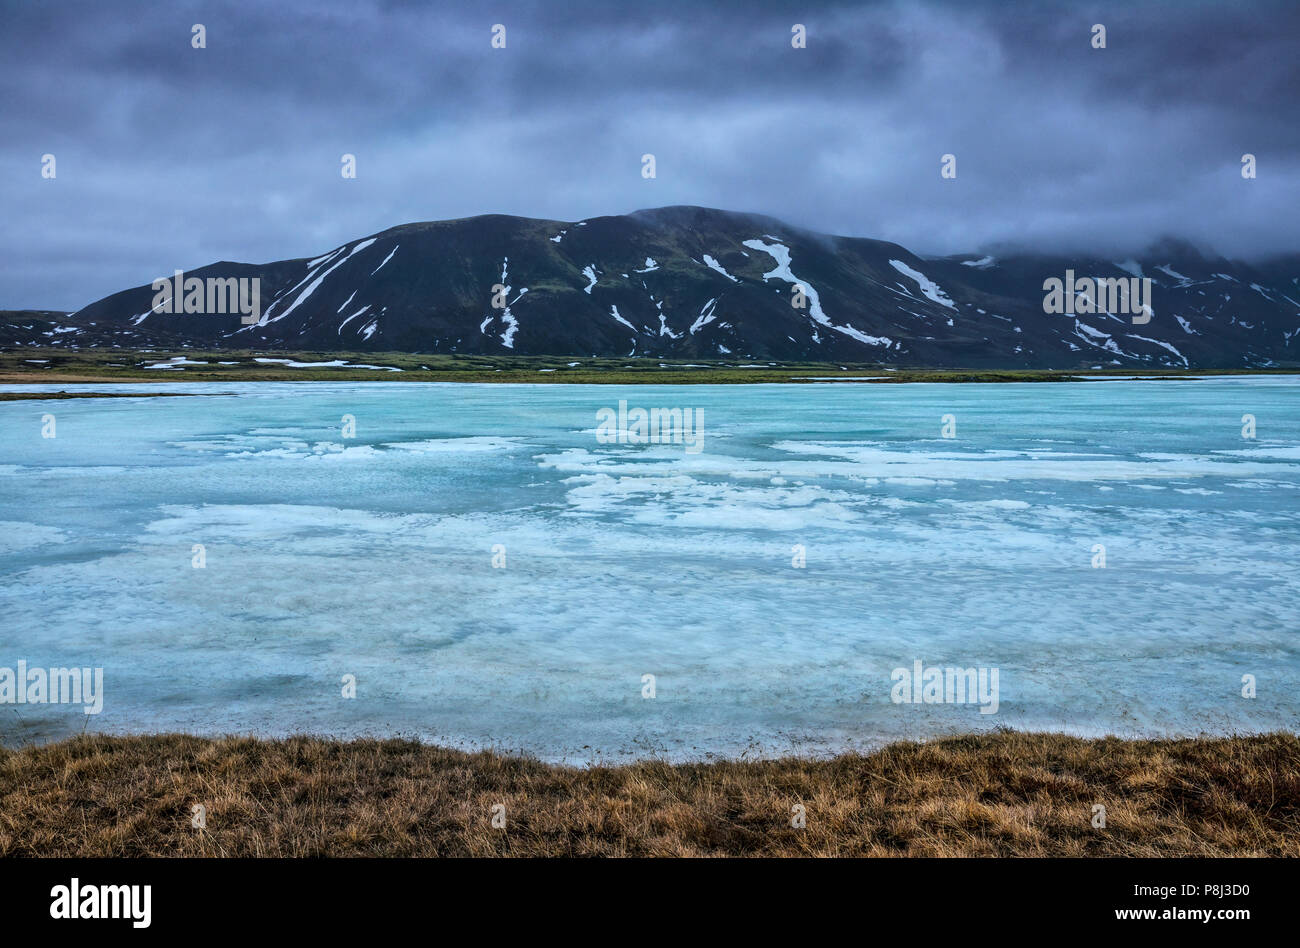 Ice melting in Icelandic wilderness Stock Photo